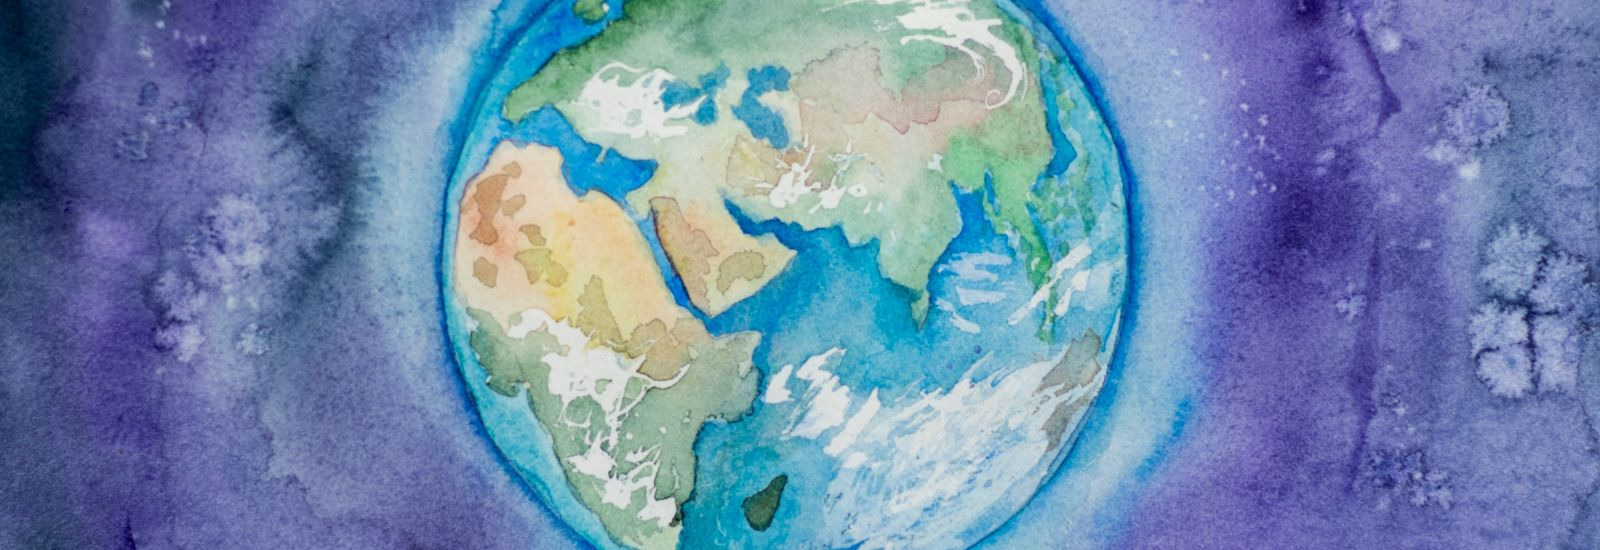 A painted illustration of the globe